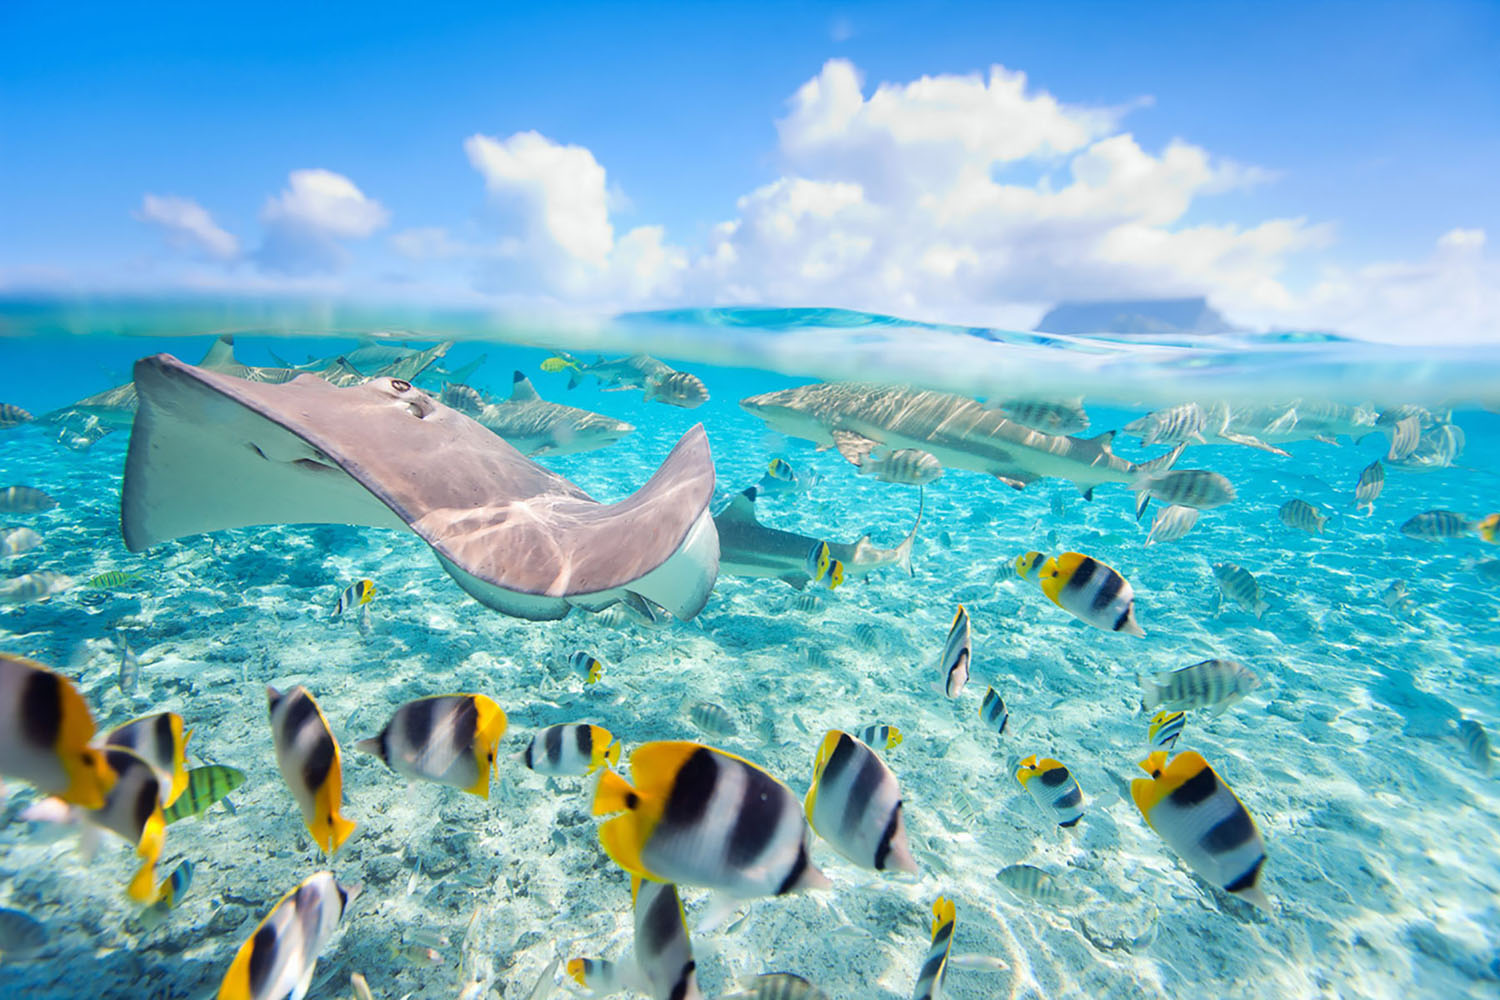 Tropical fish and rays swim underwater off the coast of French Polynesia